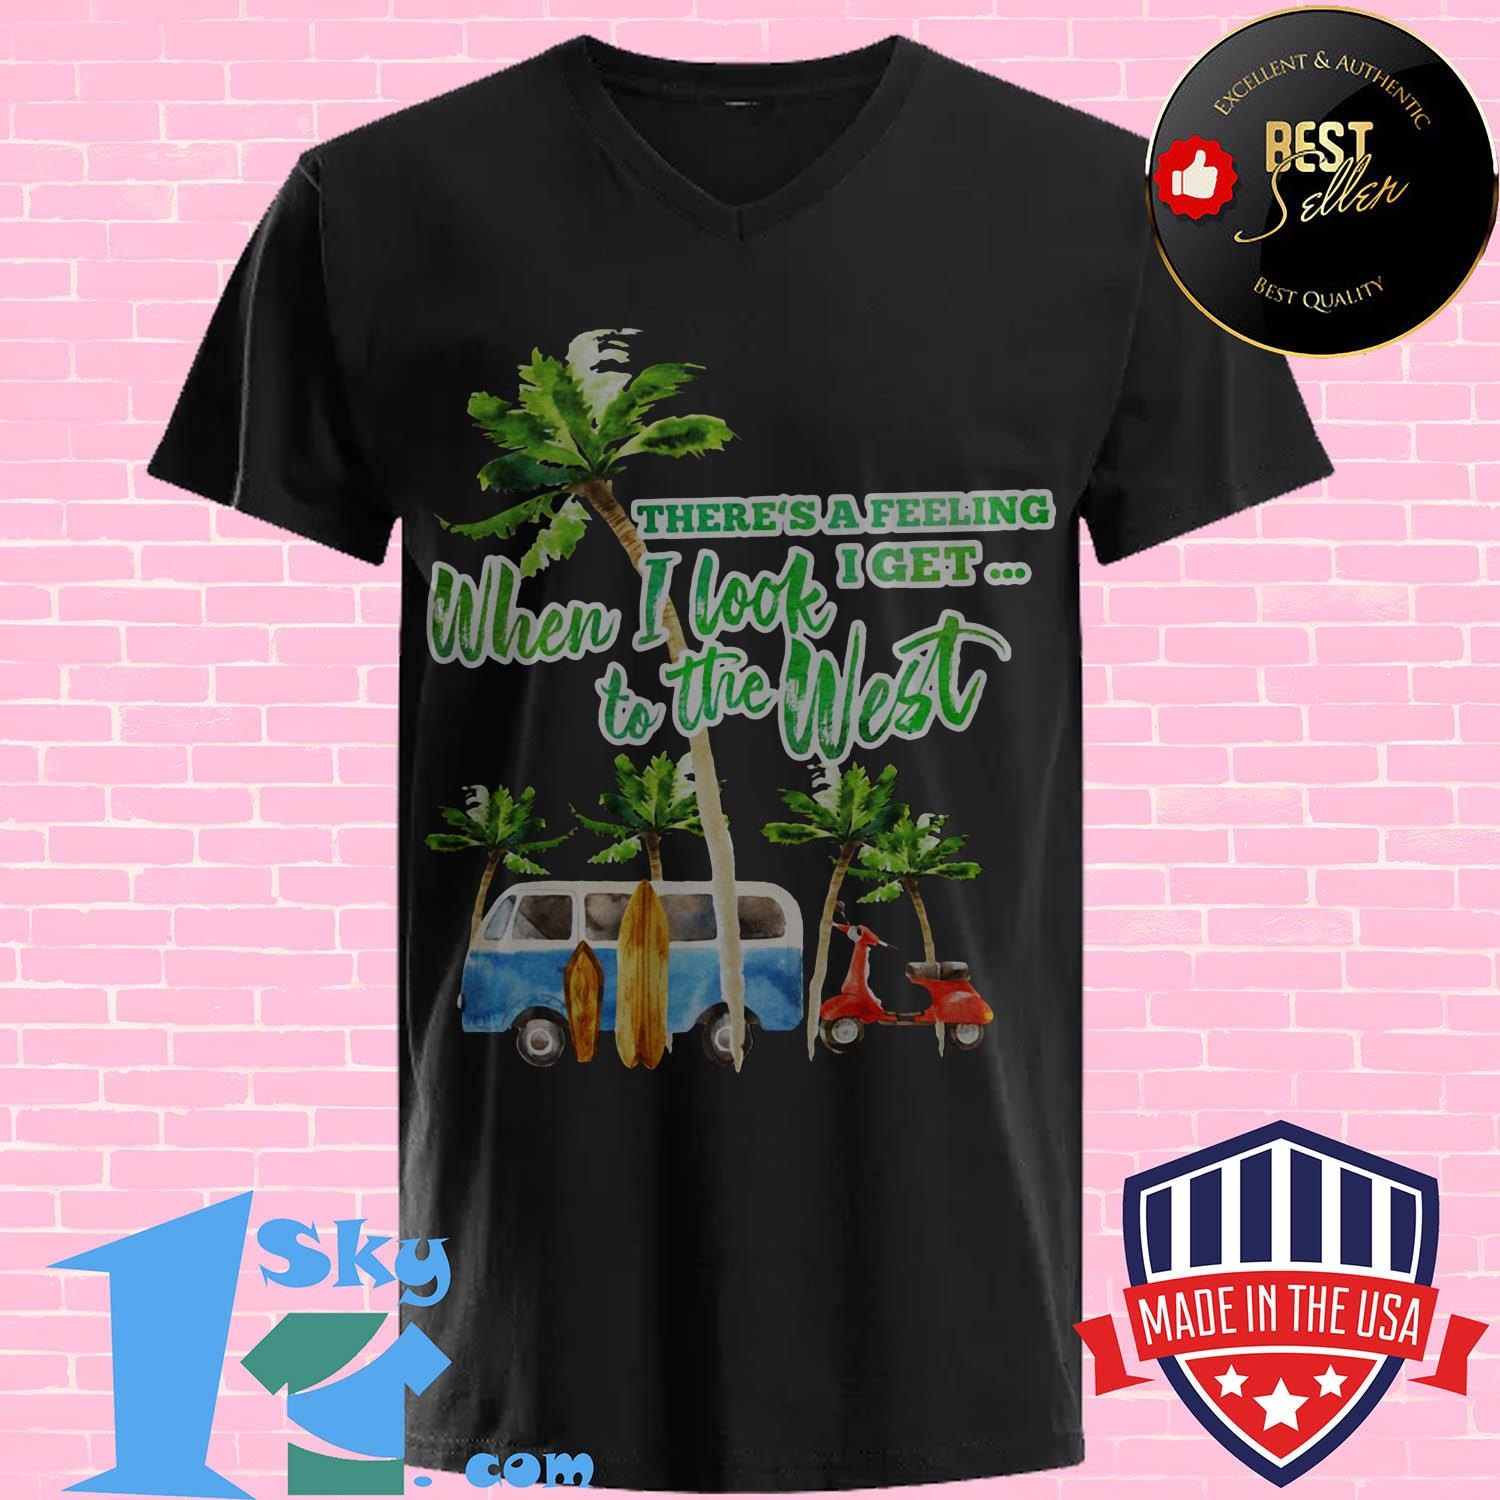 theres a feeling i get when i look to the west coconut tree vintage v neck - There's a feeling I get when I look to the West Coconut tree Vintage shirt